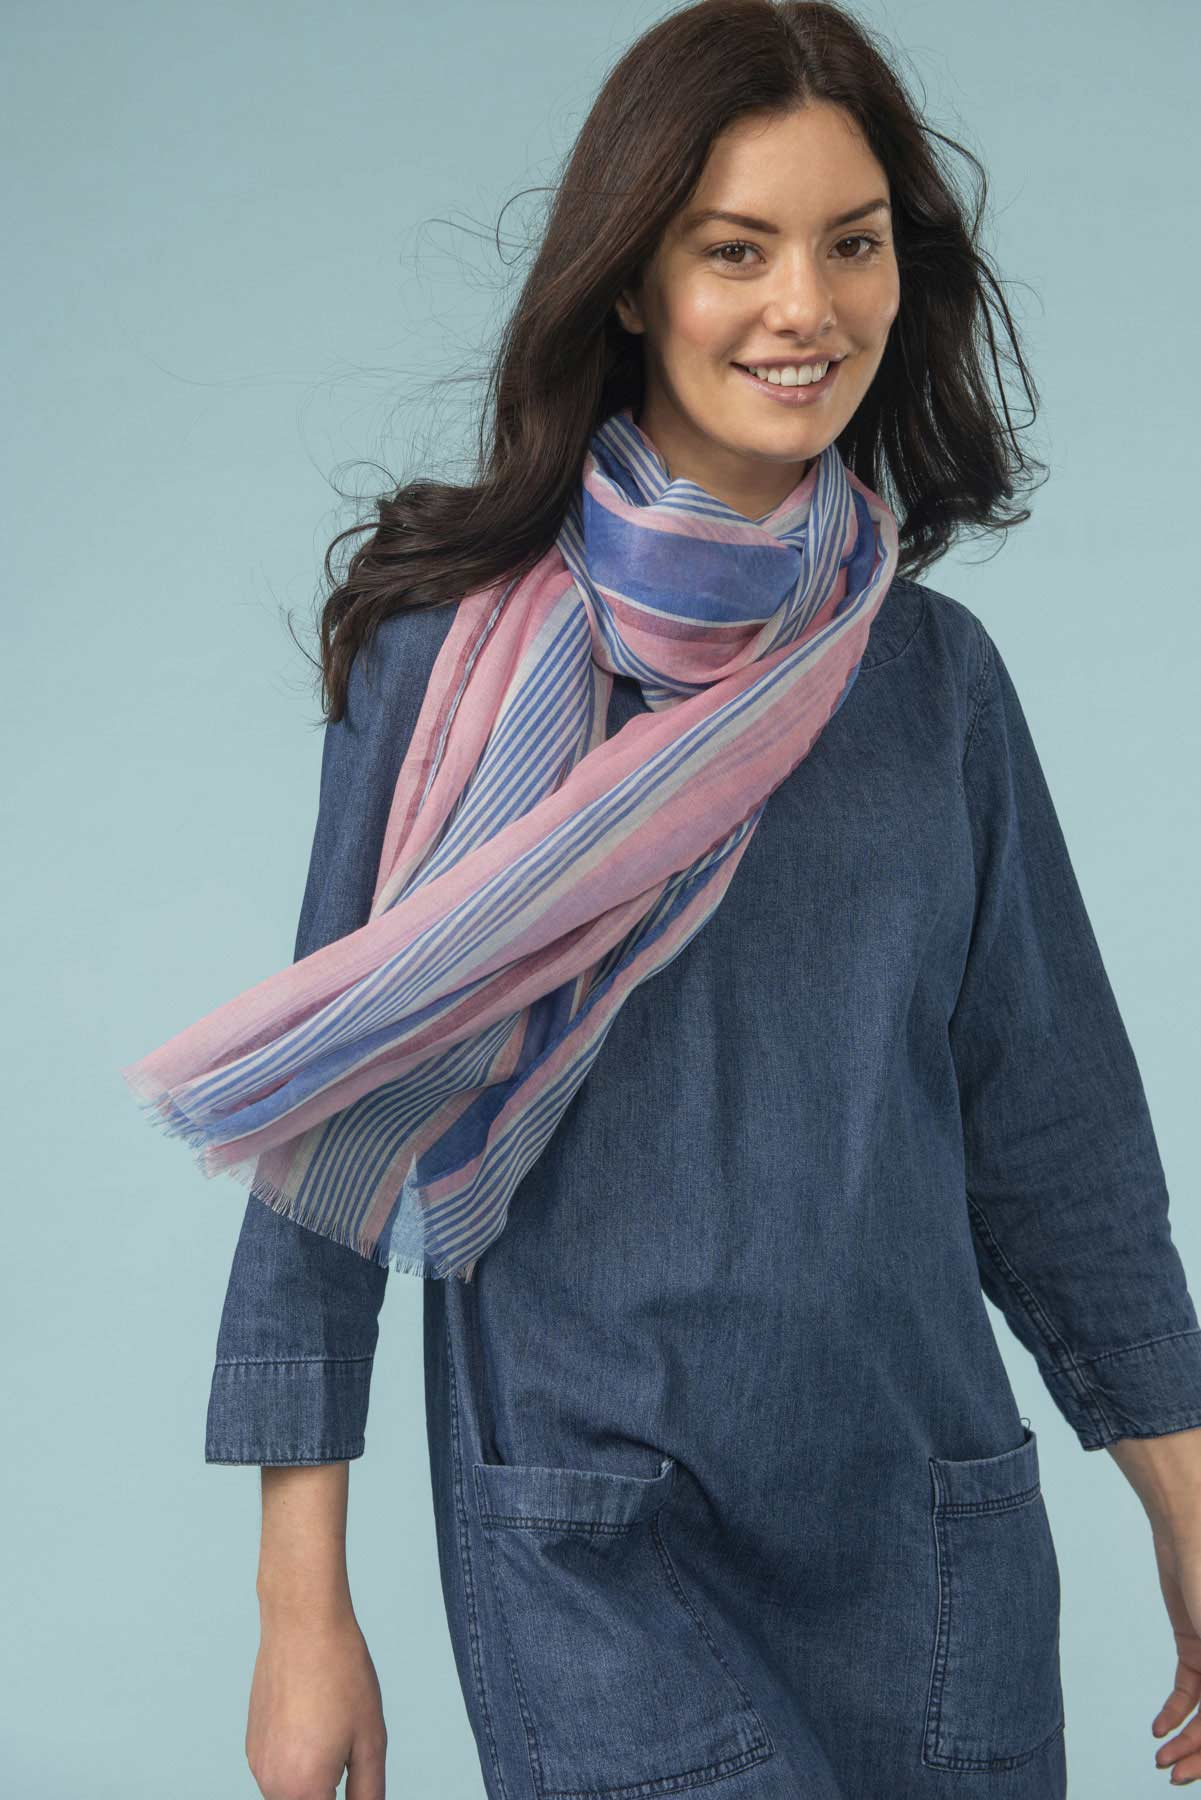 Women's Accessories - Pink striped scarf